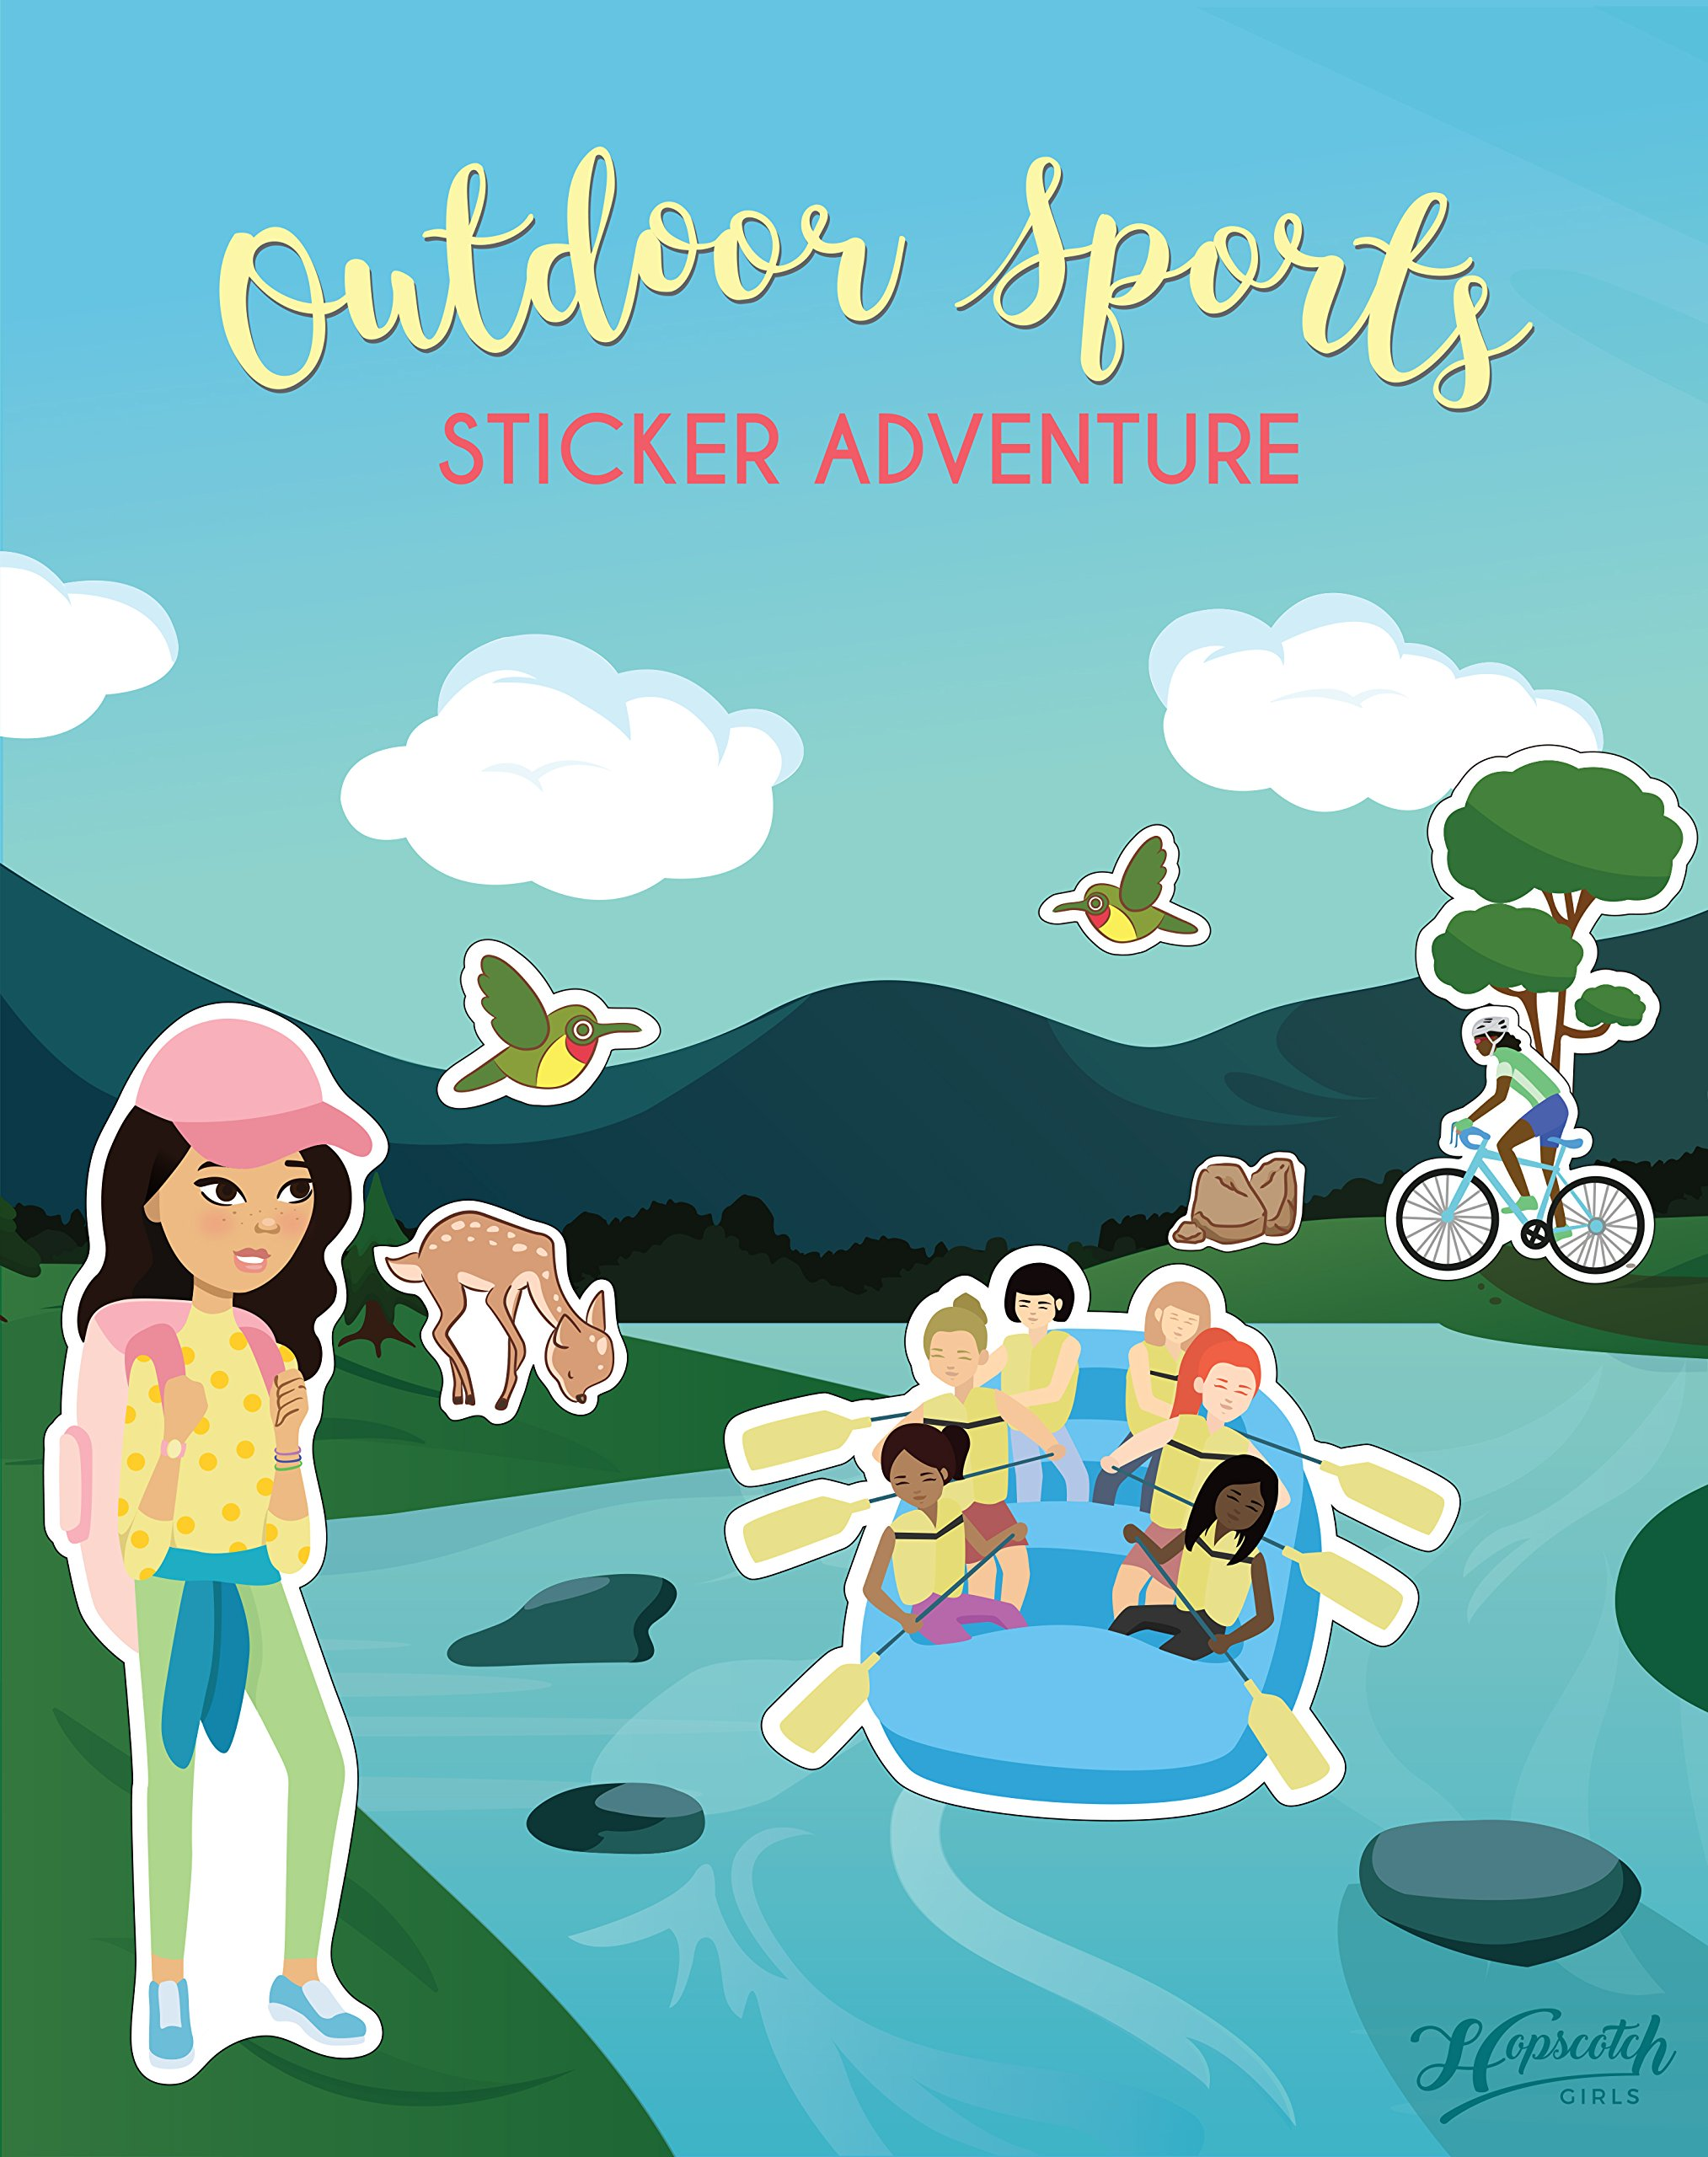 Confidence-Building Sticker Book for Girls Ages 4-8 - Outdoor Sports Sticker Adventure by Hopscotch Girls (Image #1)